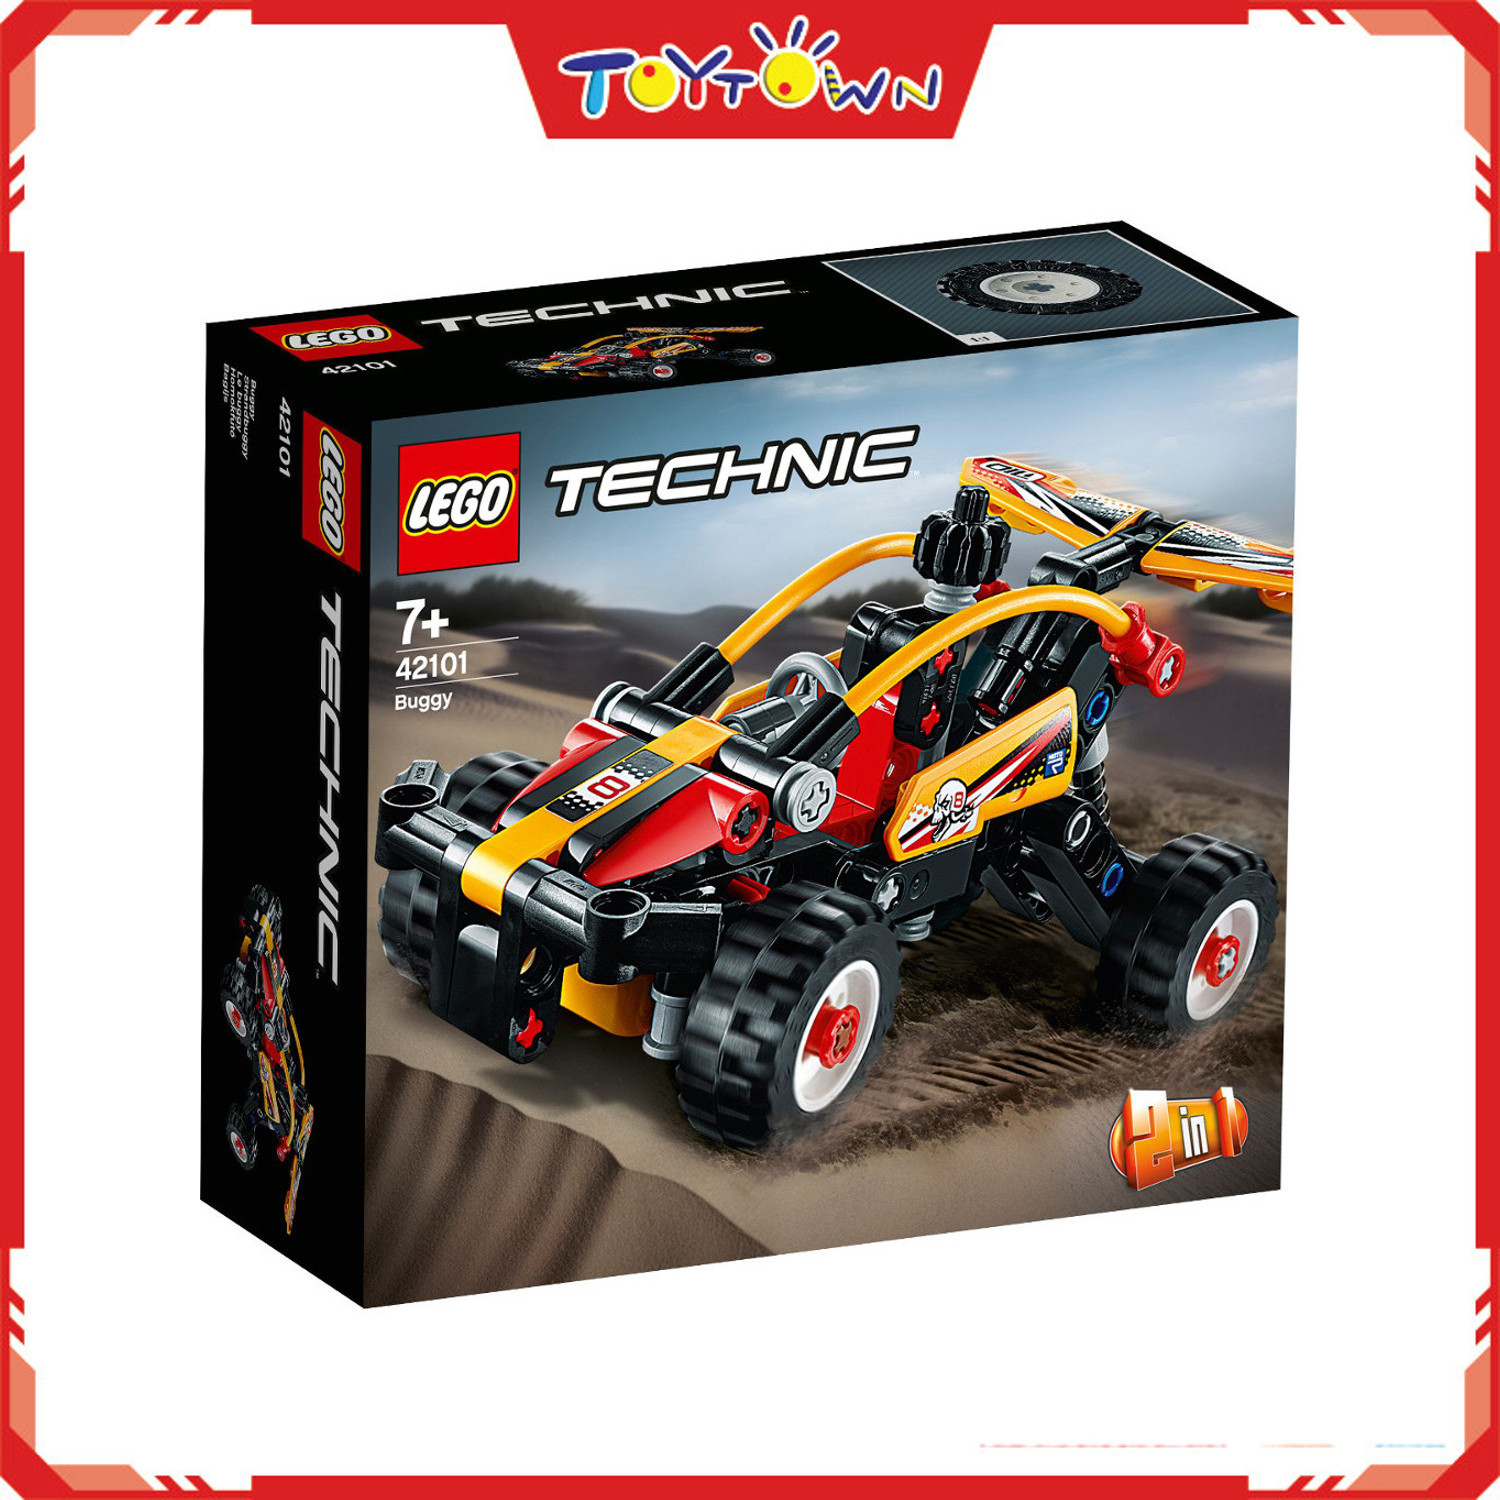 Lego Technic Buggy Buy Sell Online Building Sets With Cheap Price Lazada Ph